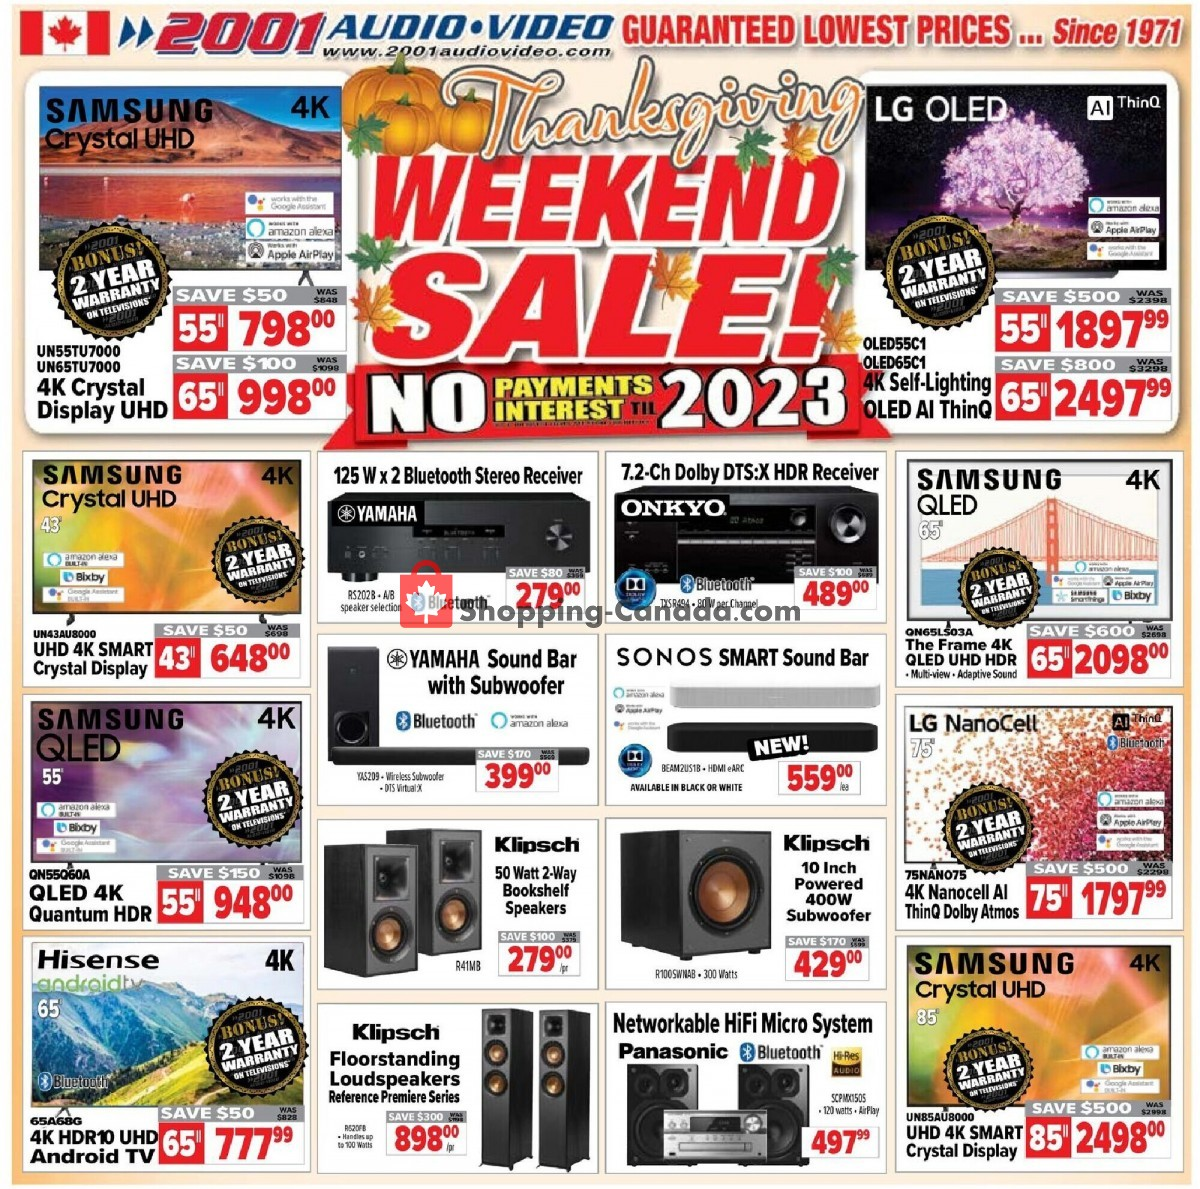 Flyer 2001 Audio Video Canada - from Friday October 8, 2021 to Thursday October 14, 2021